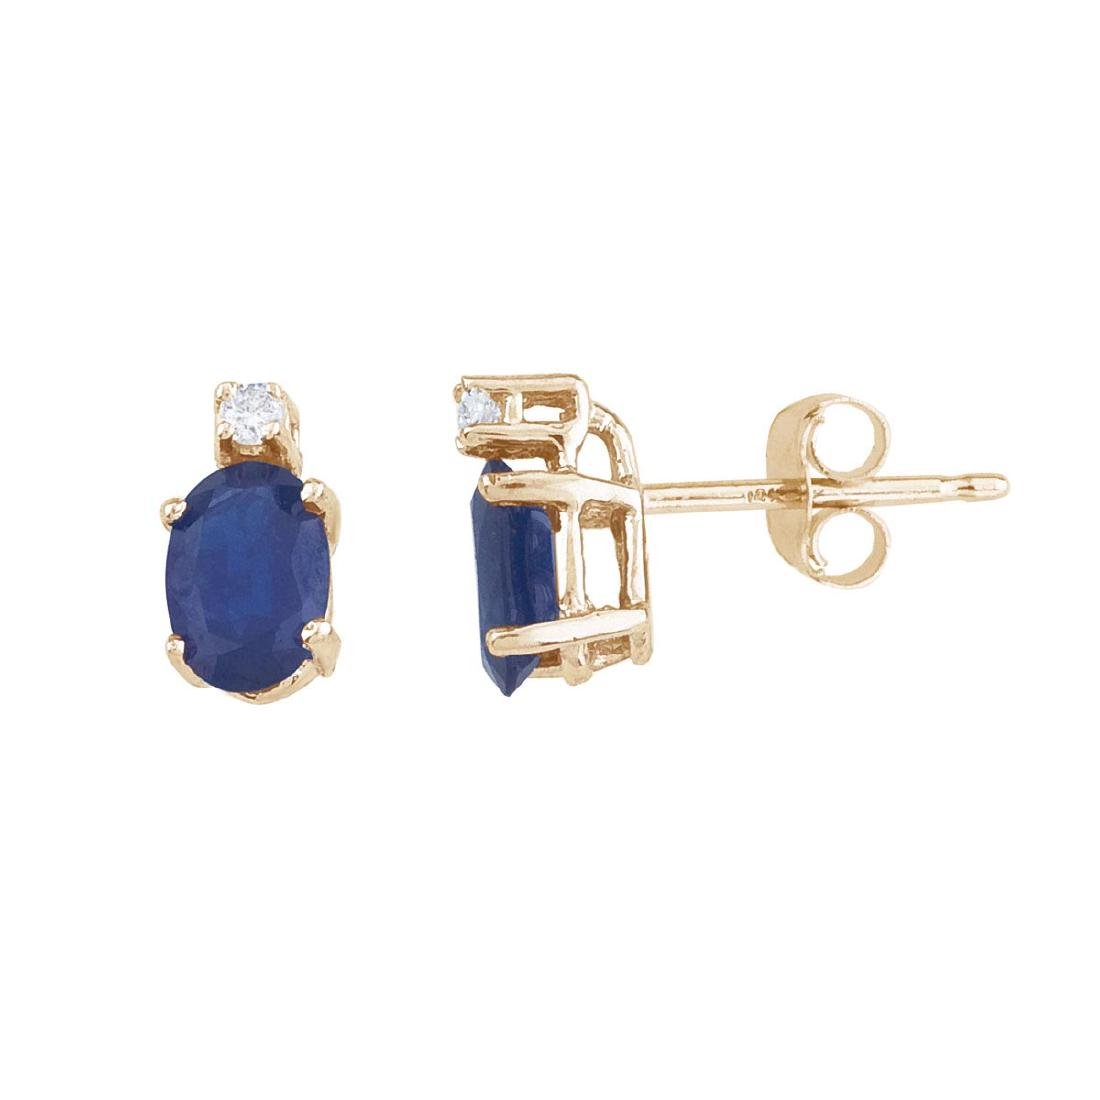 Certified 14k Yellow Gold Sapphire And Diamond Earrings